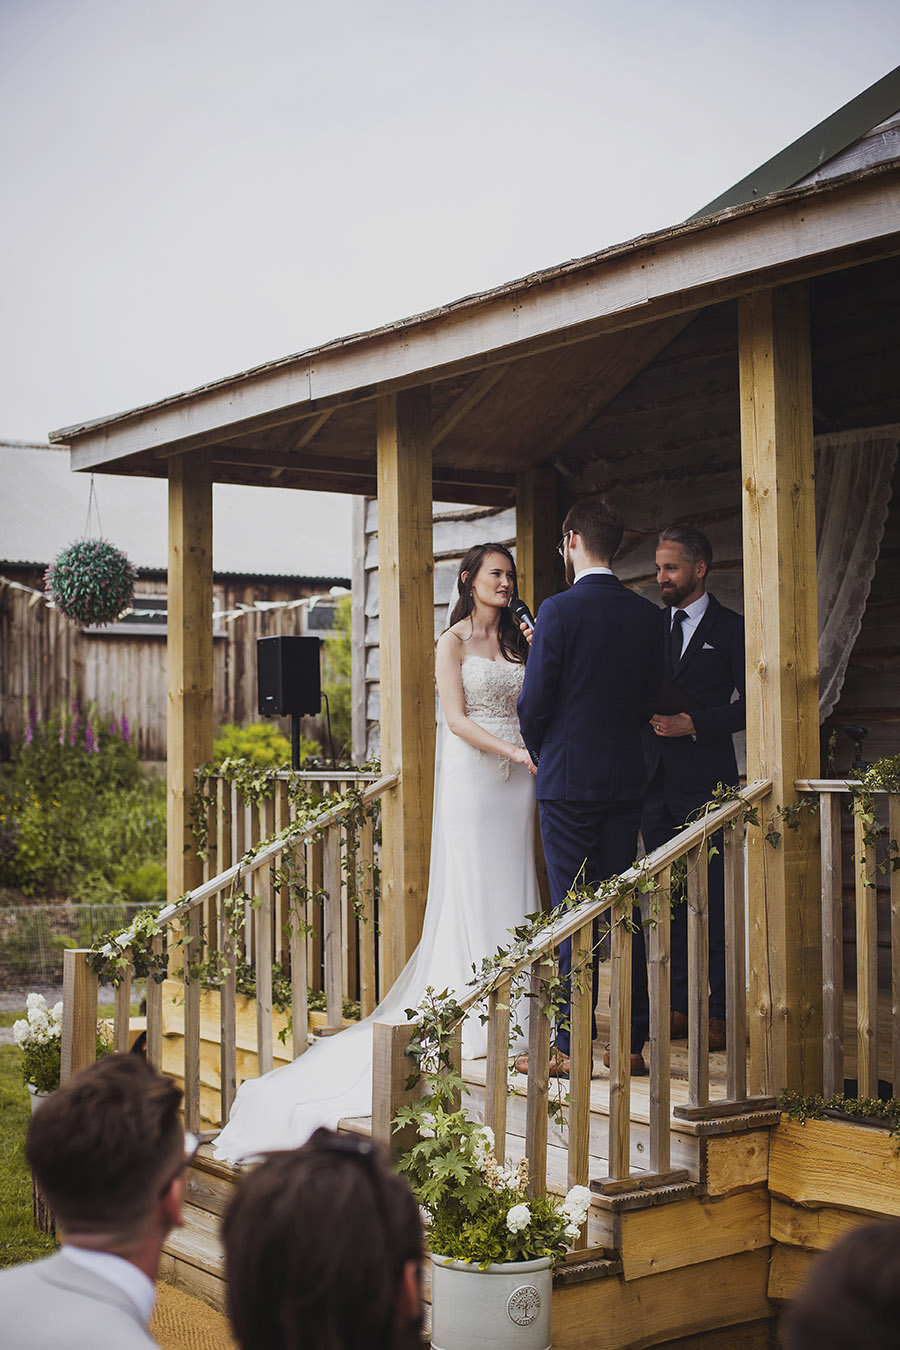 Relaxed outdoor wedding at Cott Farm Barn with images by Heather Birnie Photography on the English Wedding Blog (18)